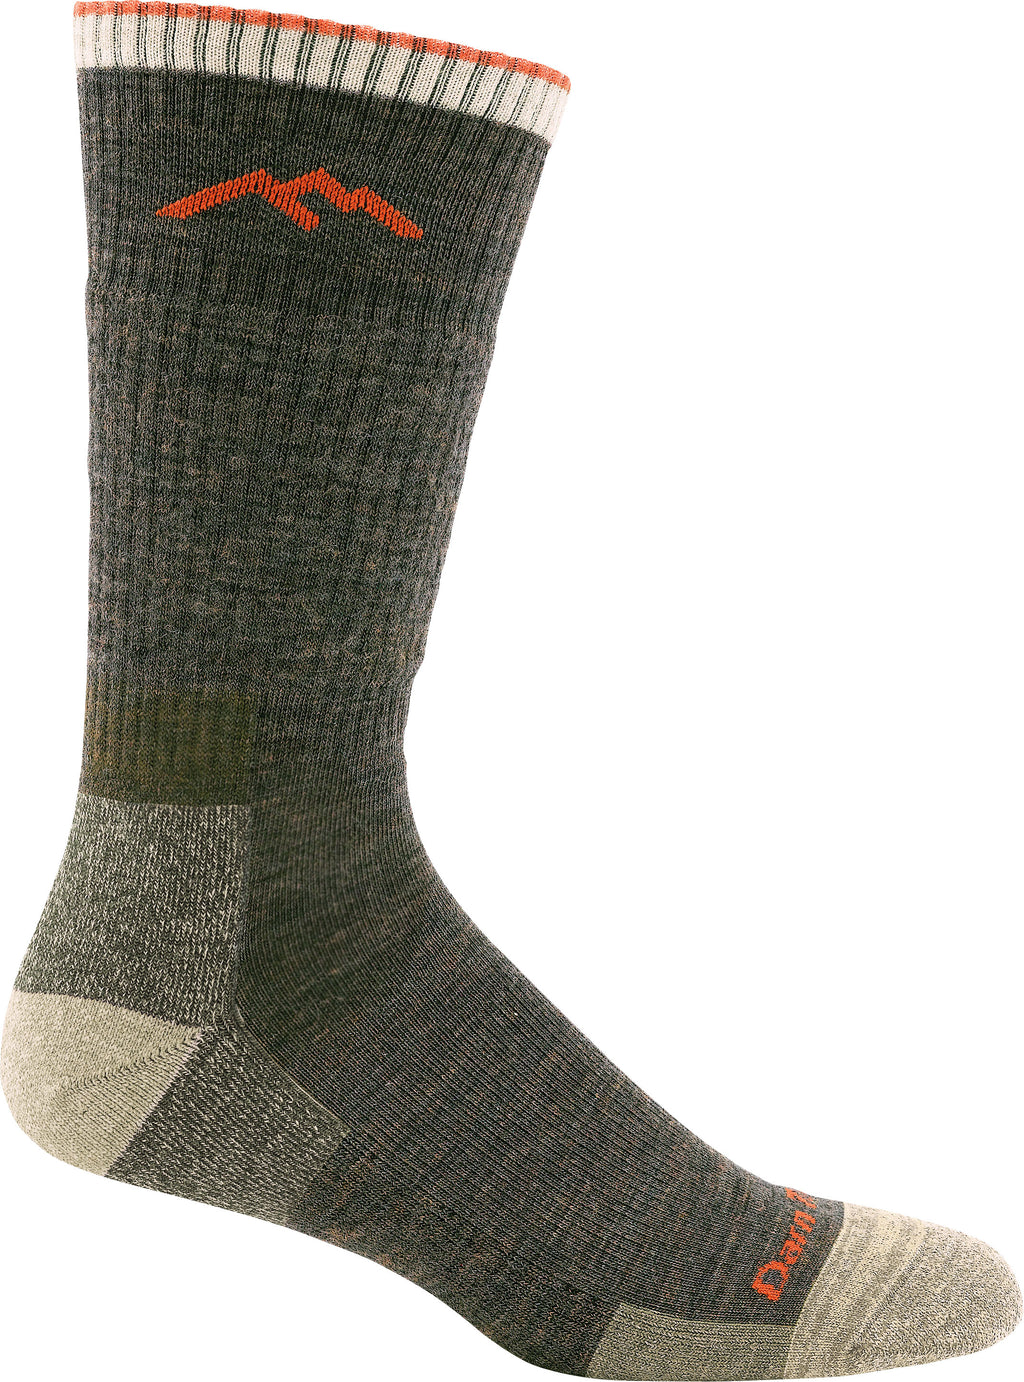 Darn Tough Men's Hiker Boot Sock Cushion Olive